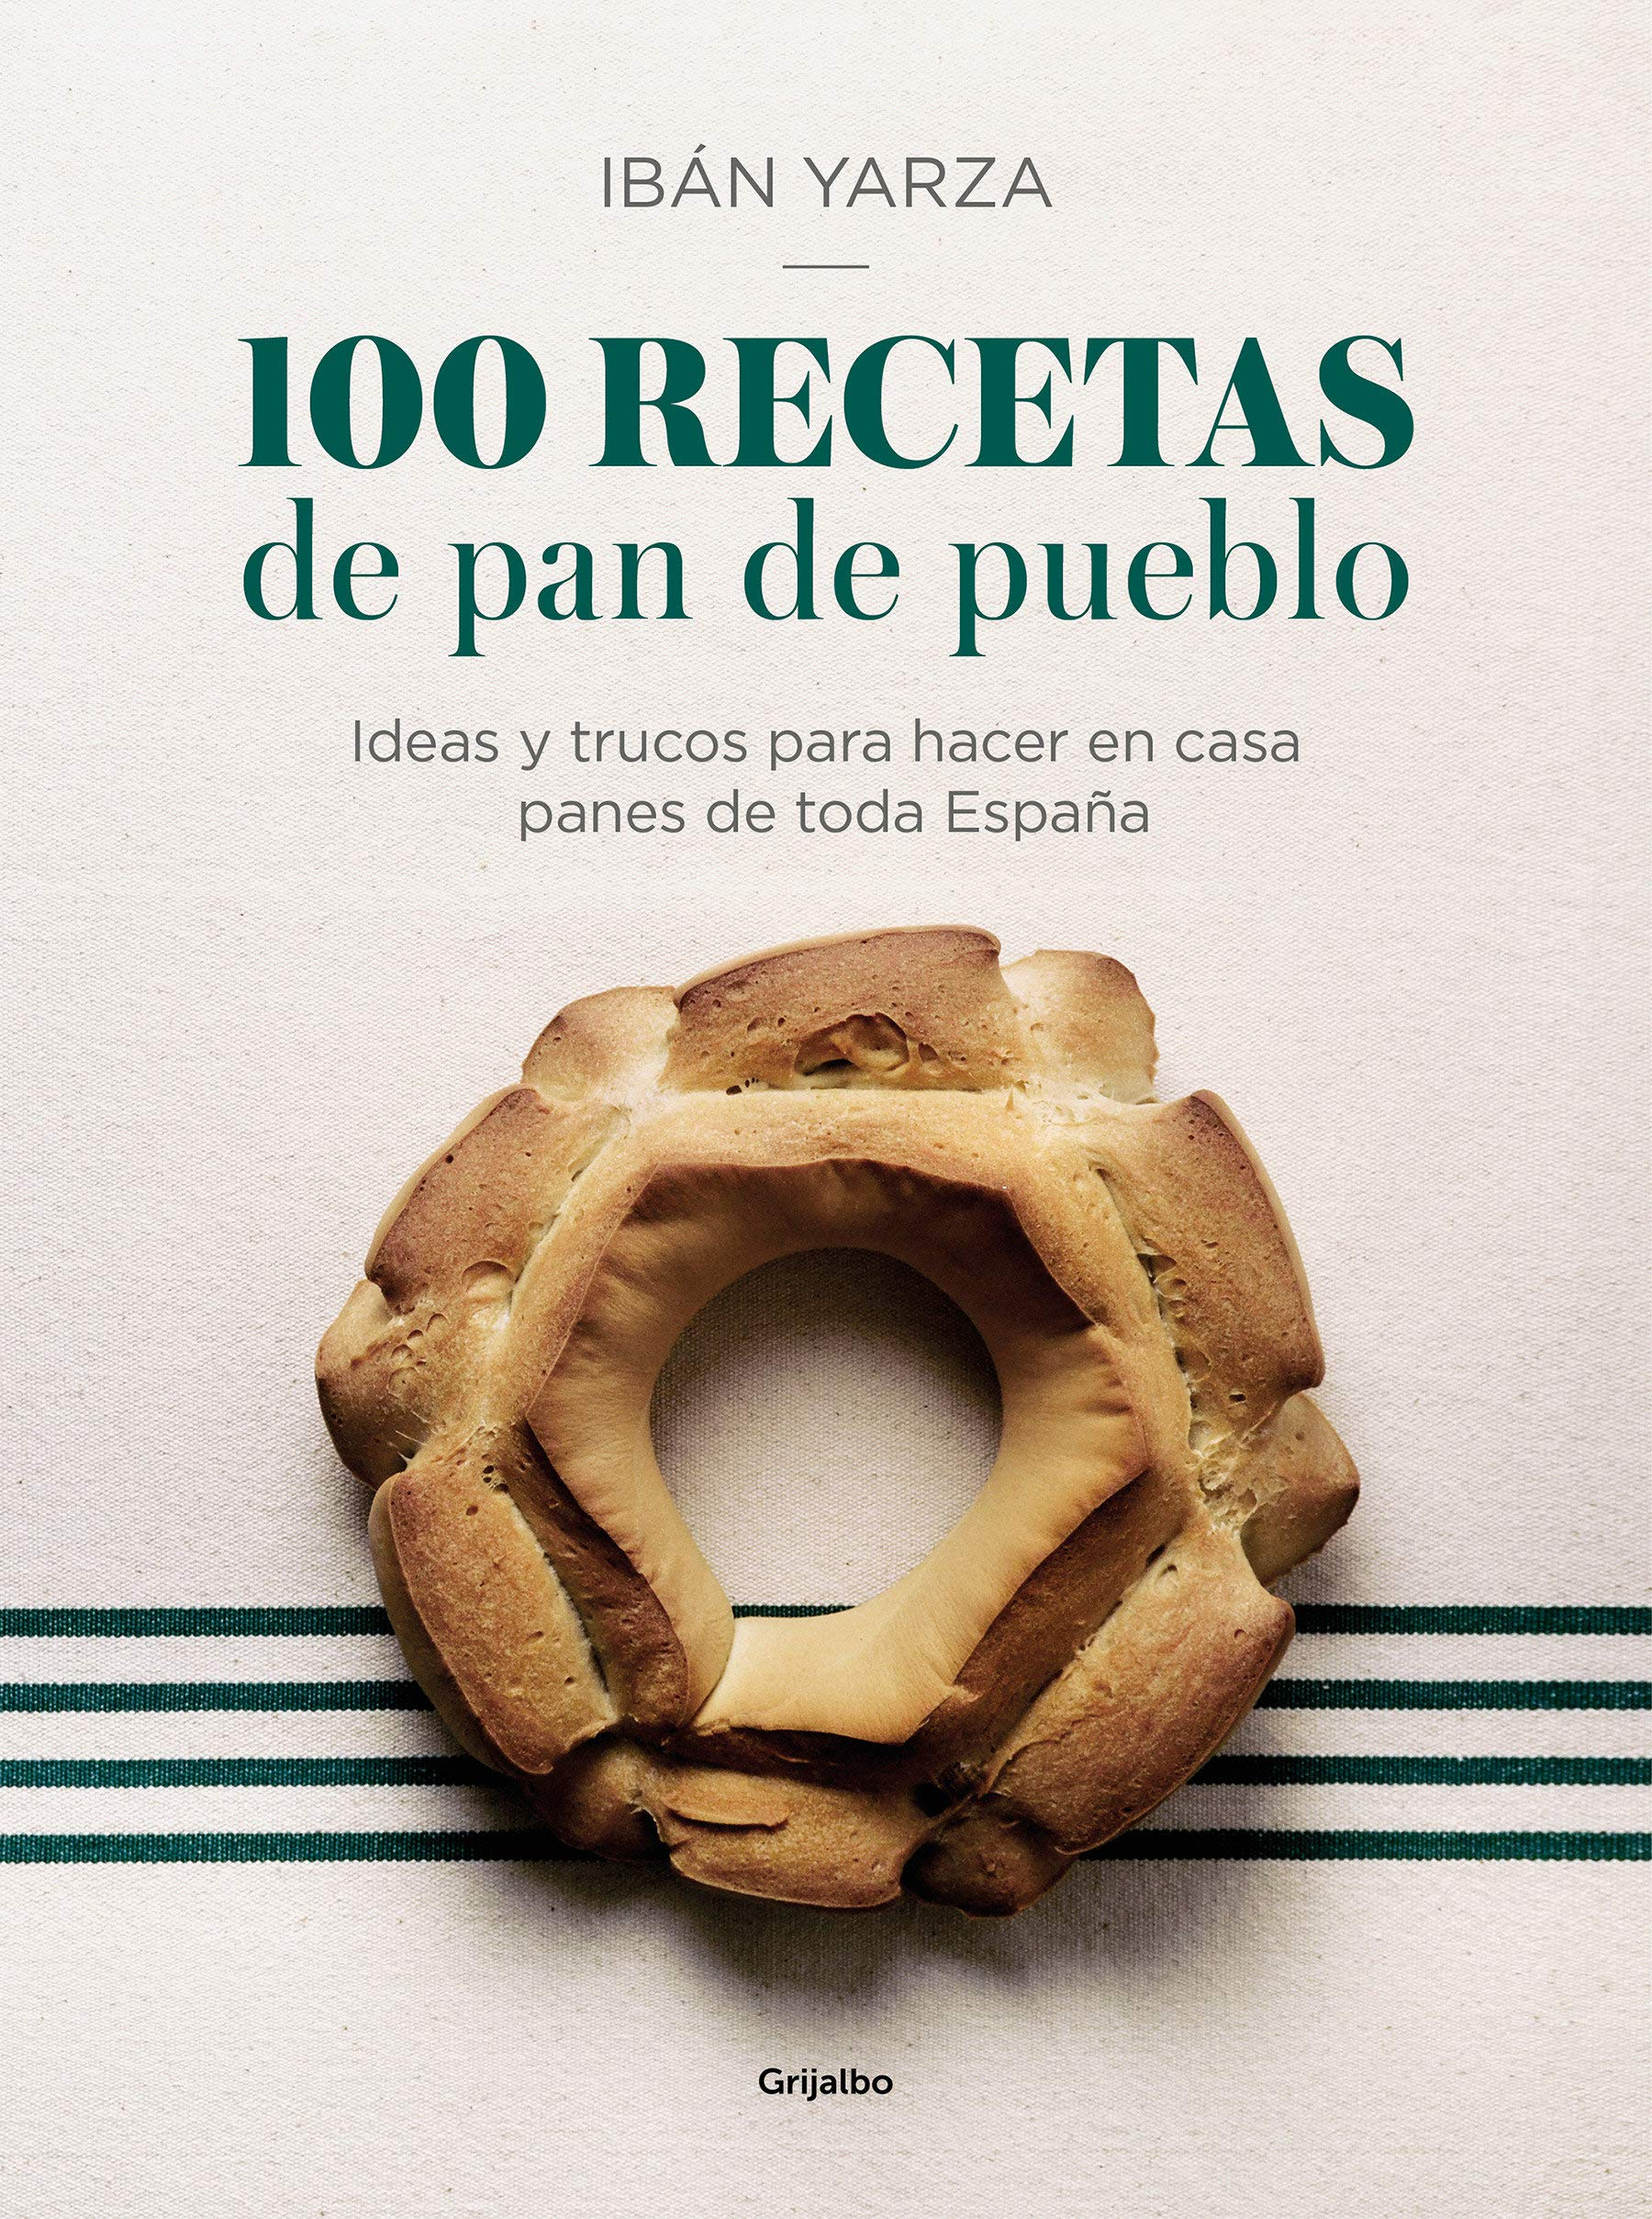 100 Recetas De Pan De Pueblo Ideas Y Trucos Para Hacer En Casa Panes De Toda España 100 Recipes For Town Bread Ideas And Tricks To Make Bread From All Ove